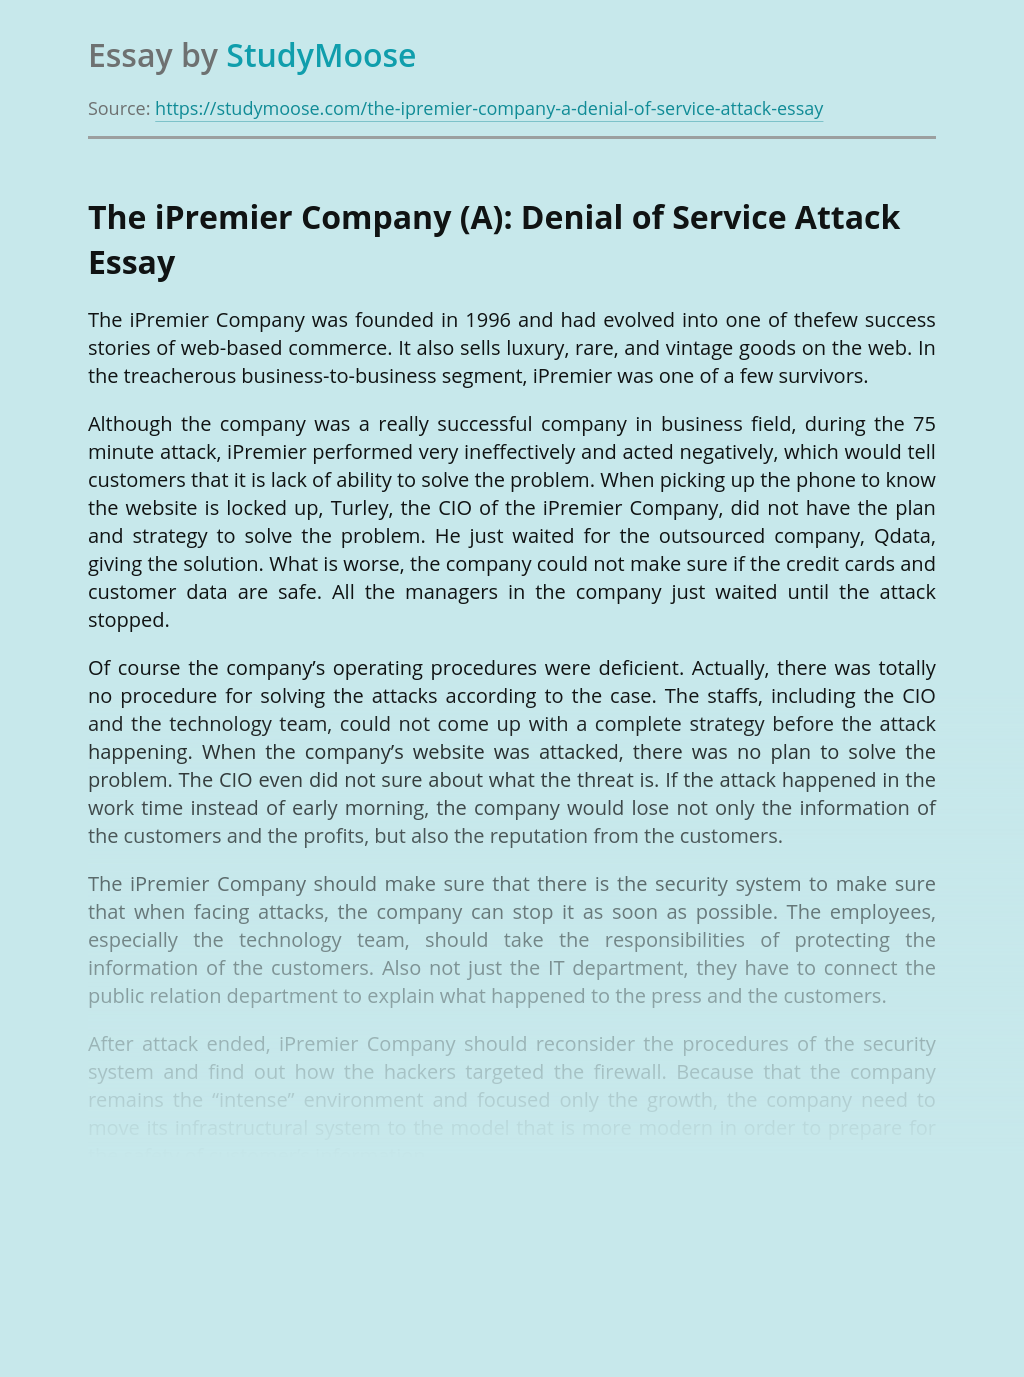 The iPremier Company (A): Denial of Service Attack